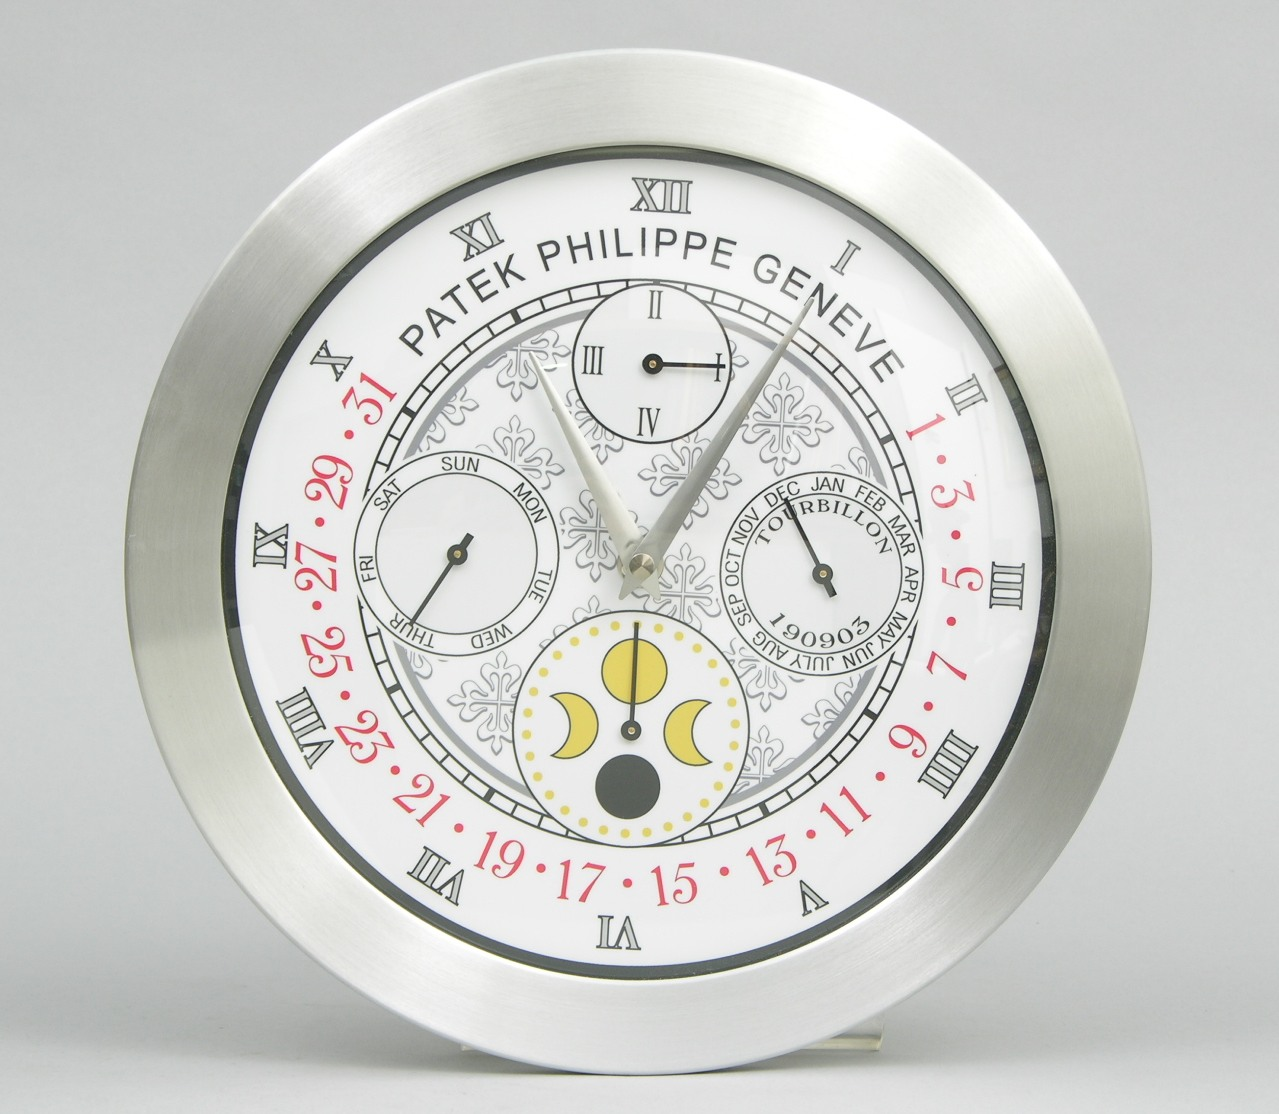 A Promotional Patek Philippe Wall Clock 091606 Sold 29325